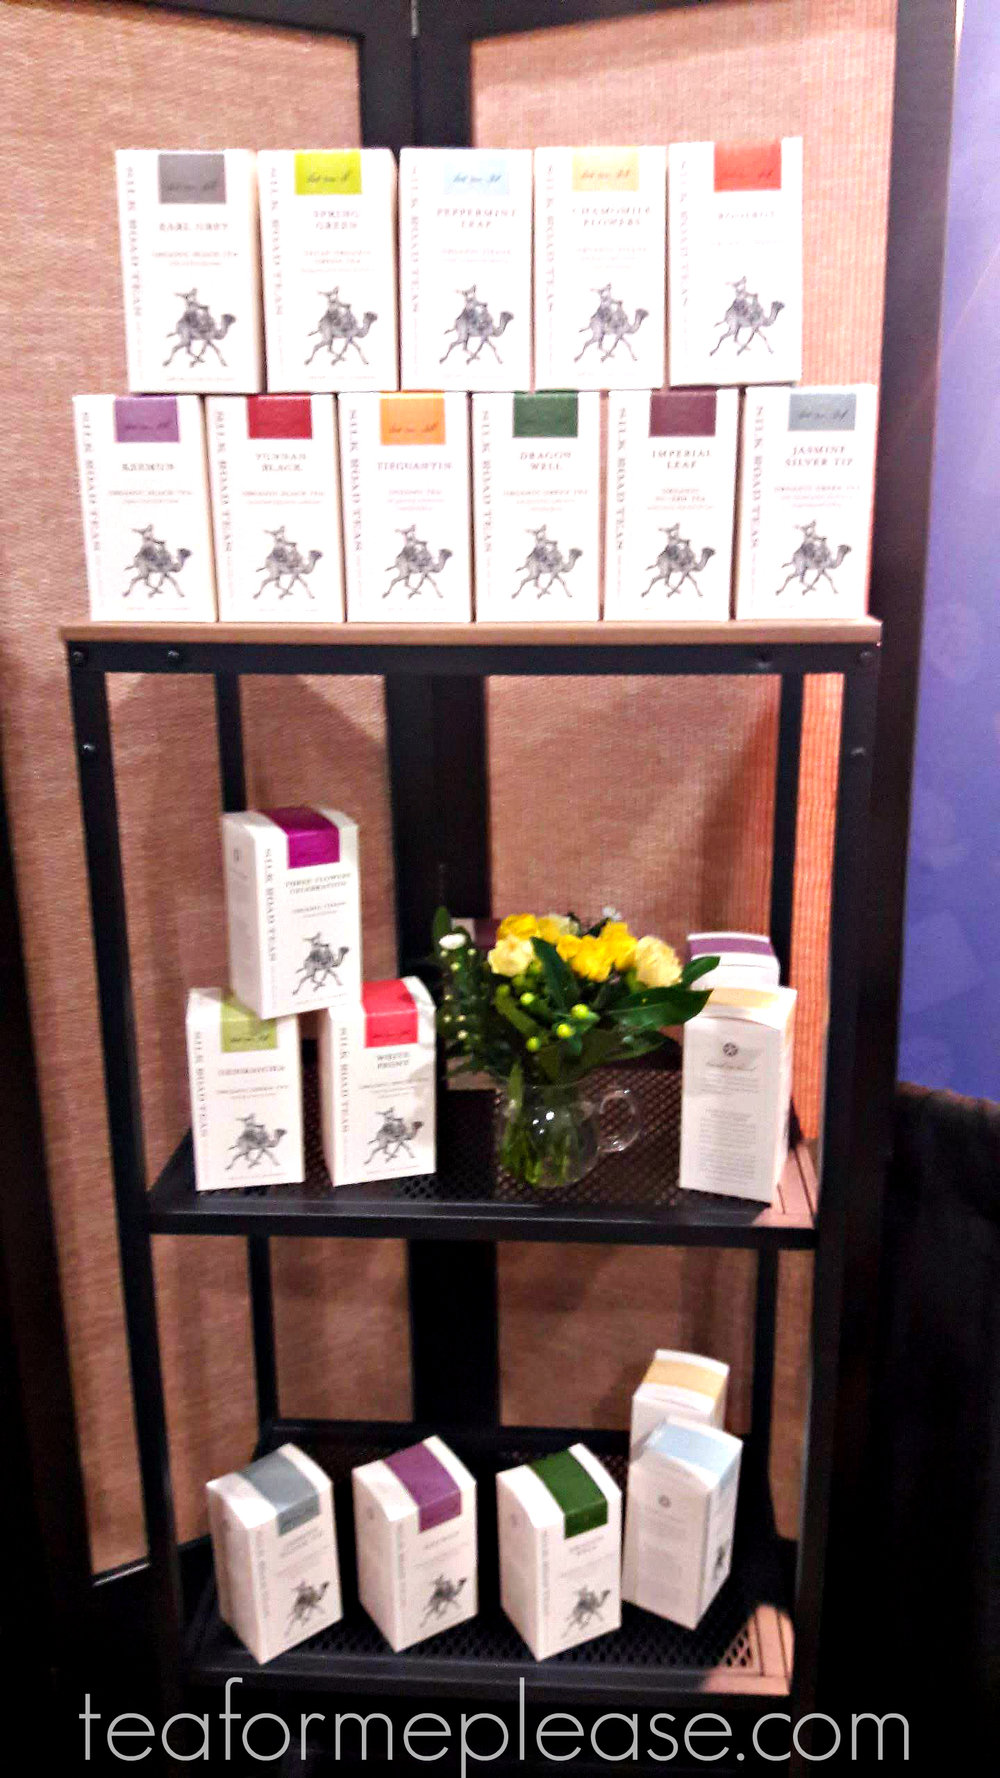 Another attractive display from Silk Road Teas